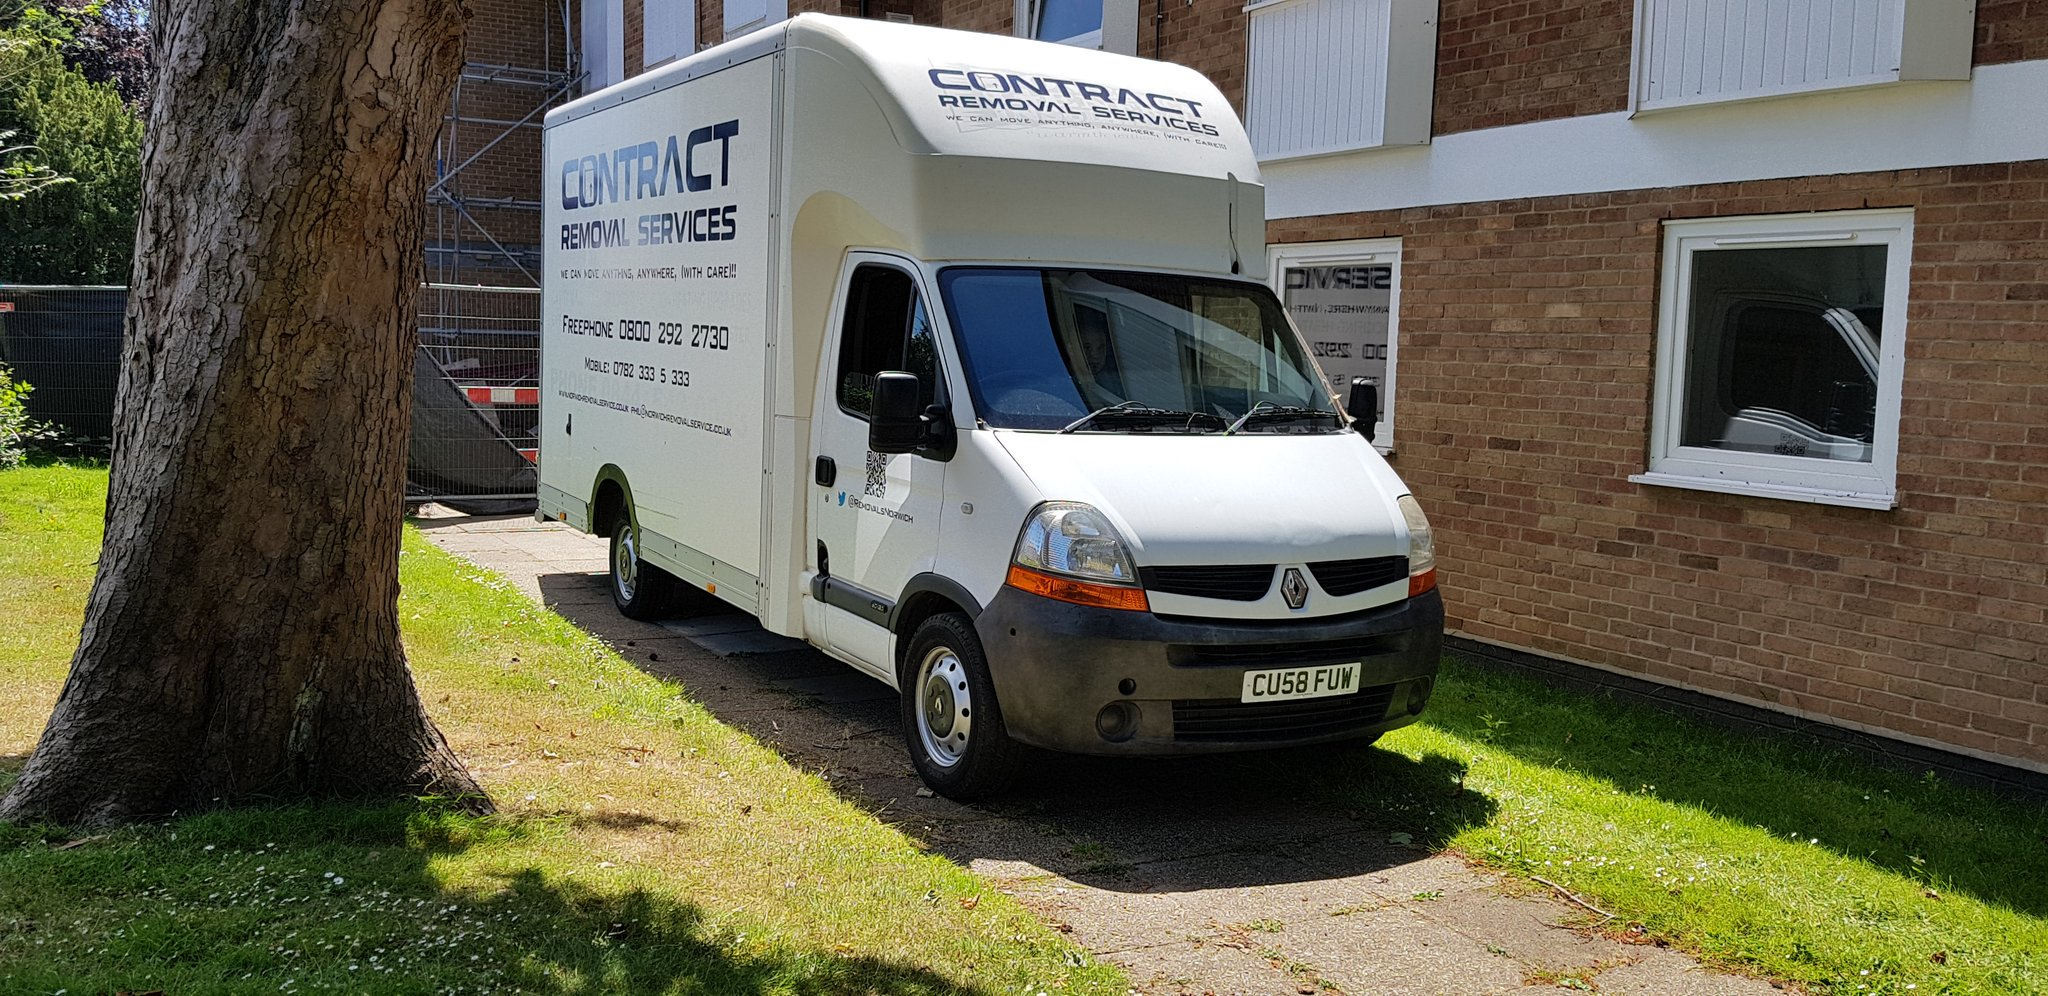 long-walk-you-say-well-see-about-that-rightonthedoorstep-pr0atdis-removals-norwich-%f0%9f%98%89%f0%9f%91%8d-https-t-co-9mazdx9kh0